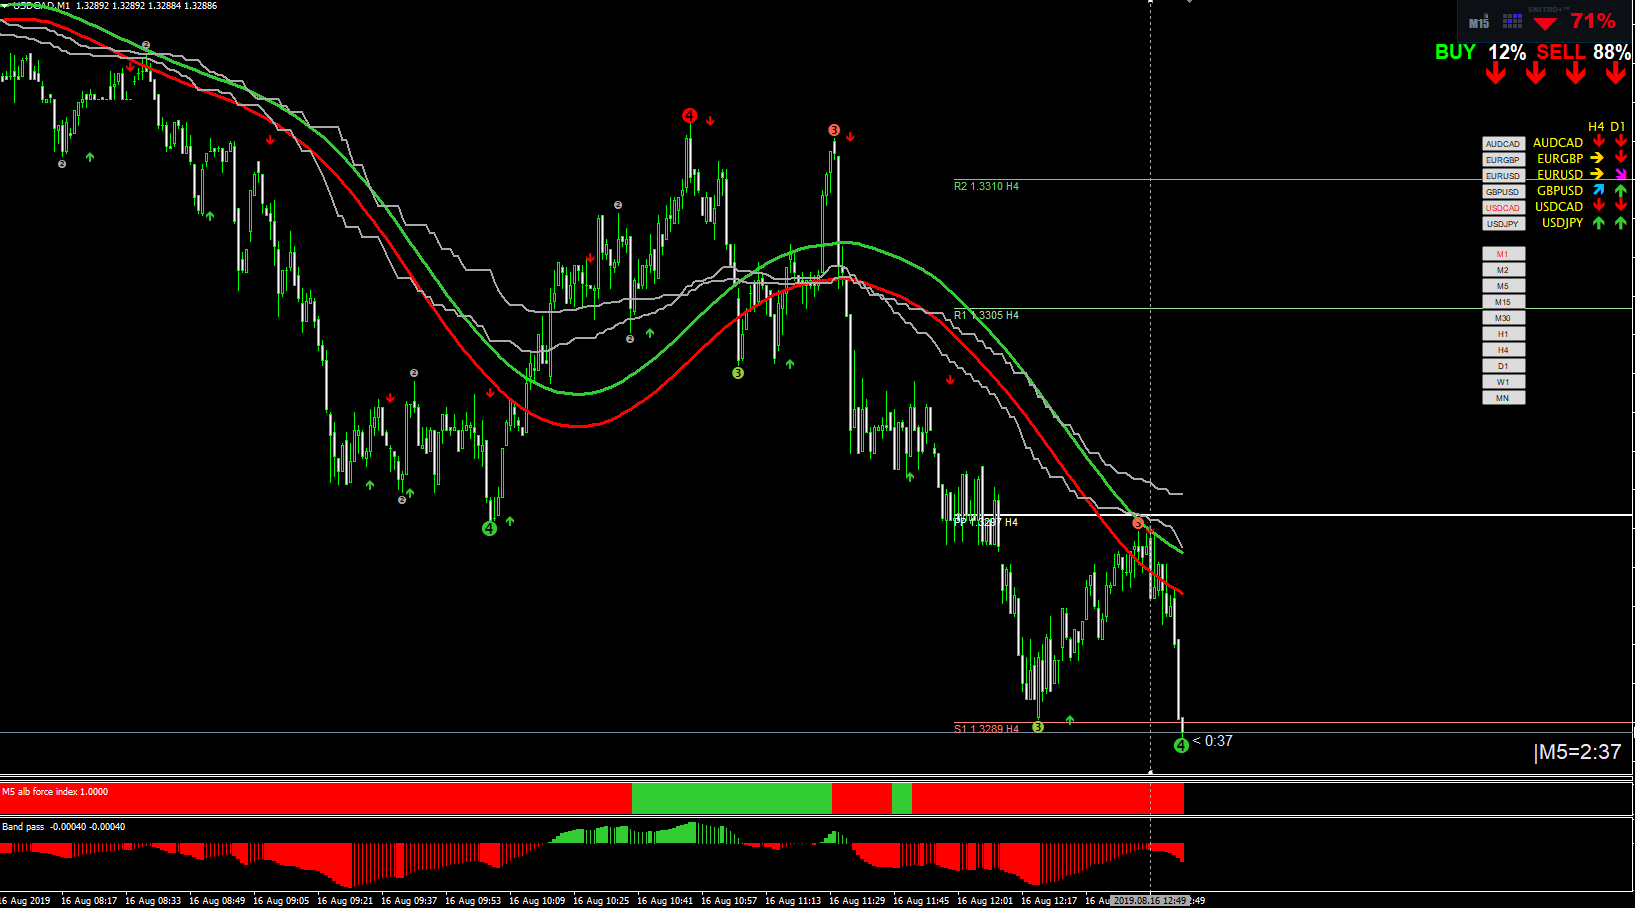 BINARY OPTIONS TRADING STRATEGY & IDEAS - Page 242